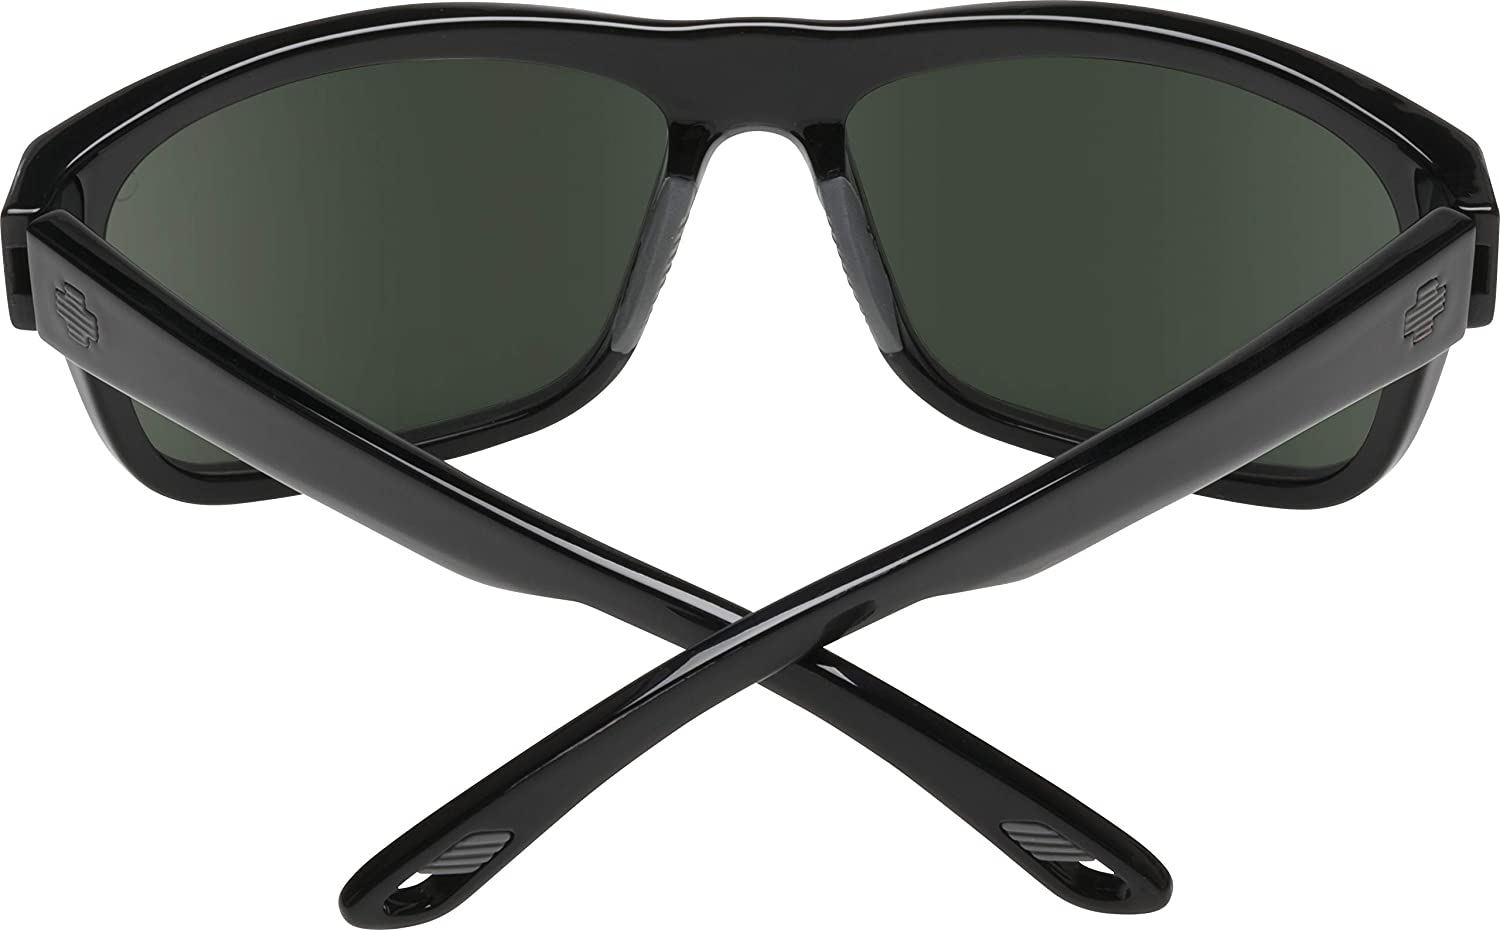 e56fe286d9ed9 Amazon.com  Spy Optic Angler Polarized Flat Sunglasses